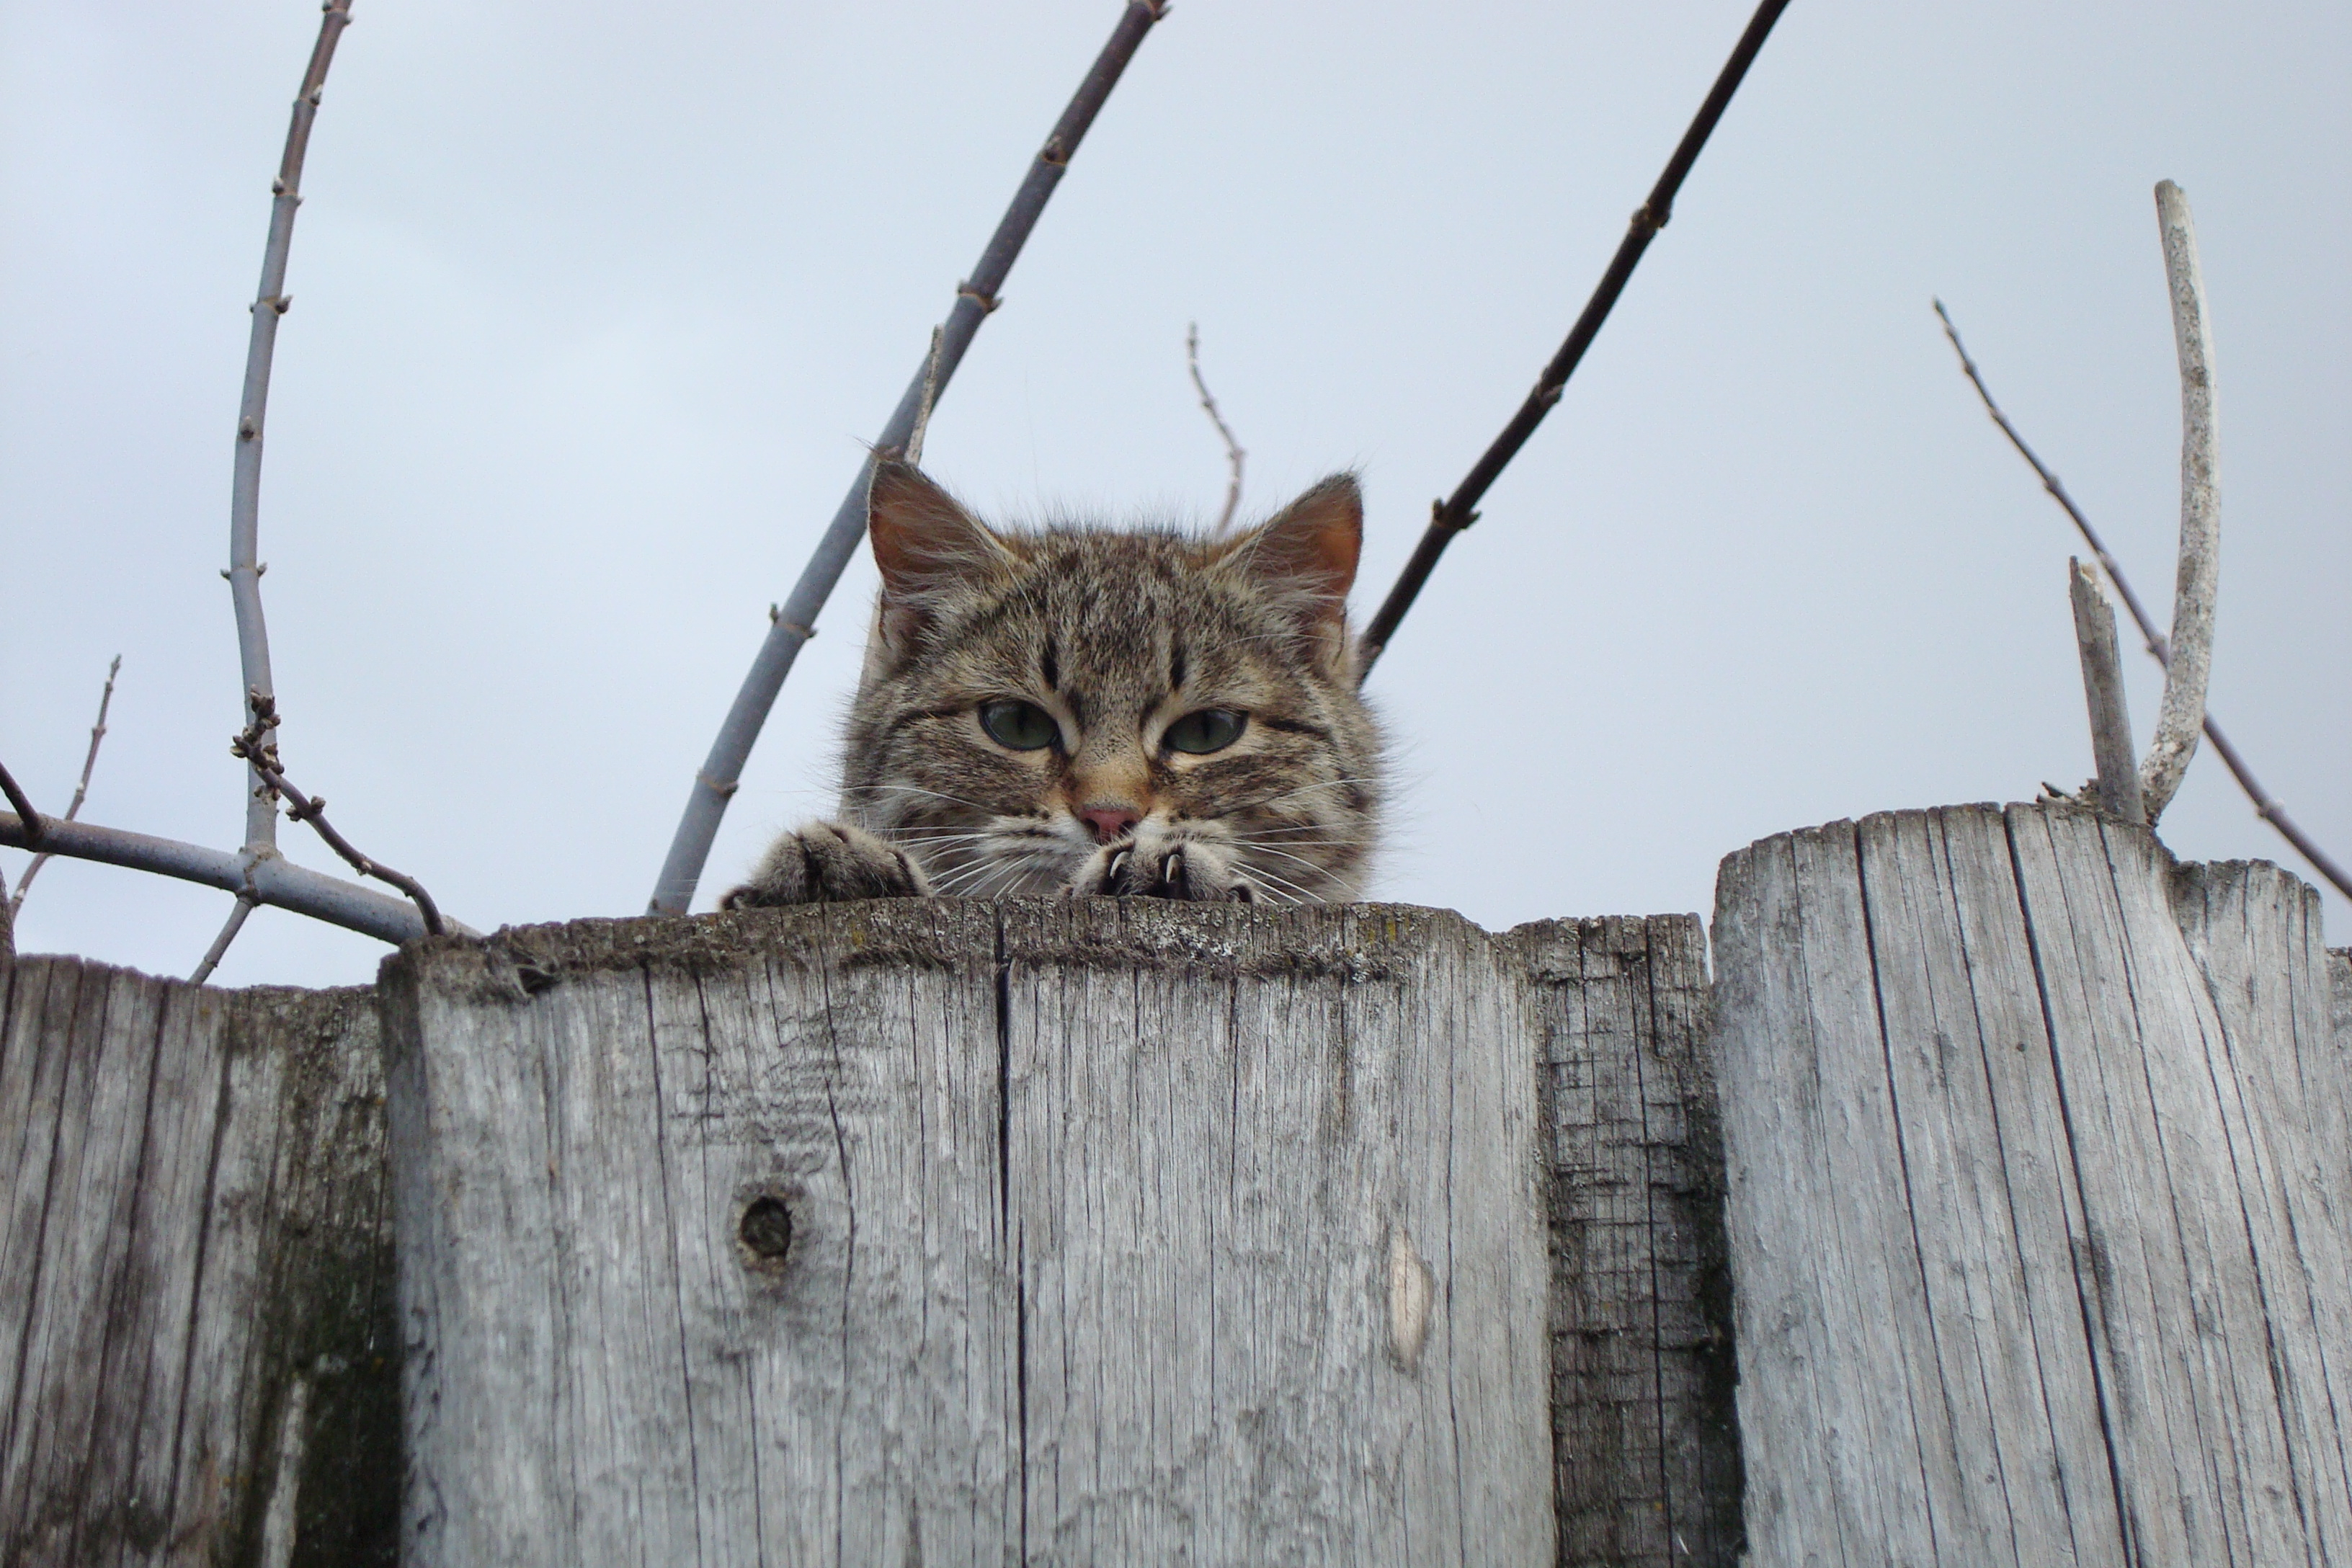 53677 download wallpaper Animals, Cat, Muzzle, Sight, Opinion, Fence, Peek Out, Look Out screensavers and pictures for free